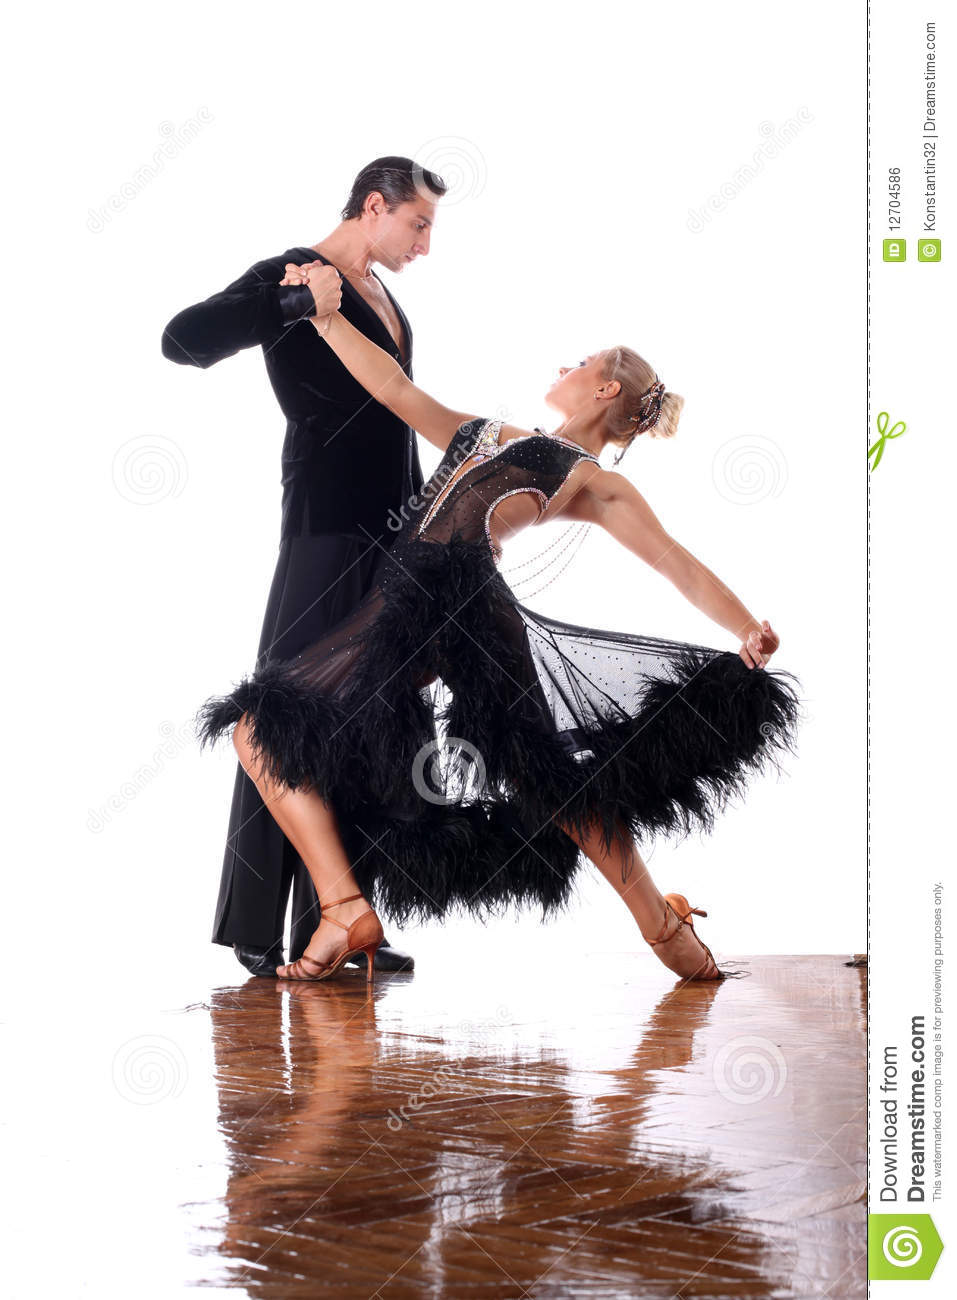 Dancers In Ballroom Royalty Free Stock Image - Image: 12704586